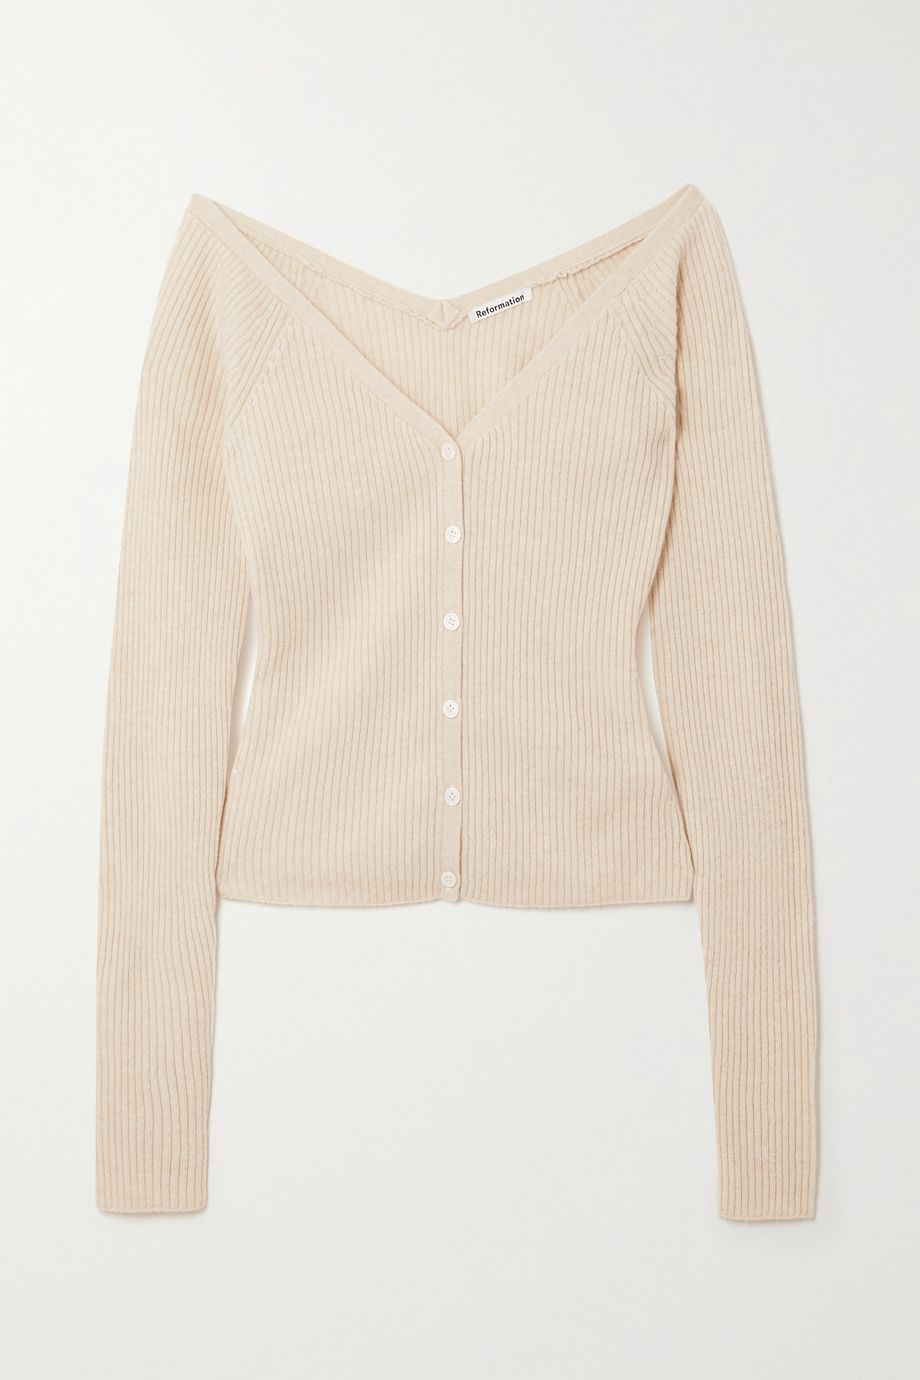 Reformation Faro cropped off-the-shoulder ribbed cashmere cardigan